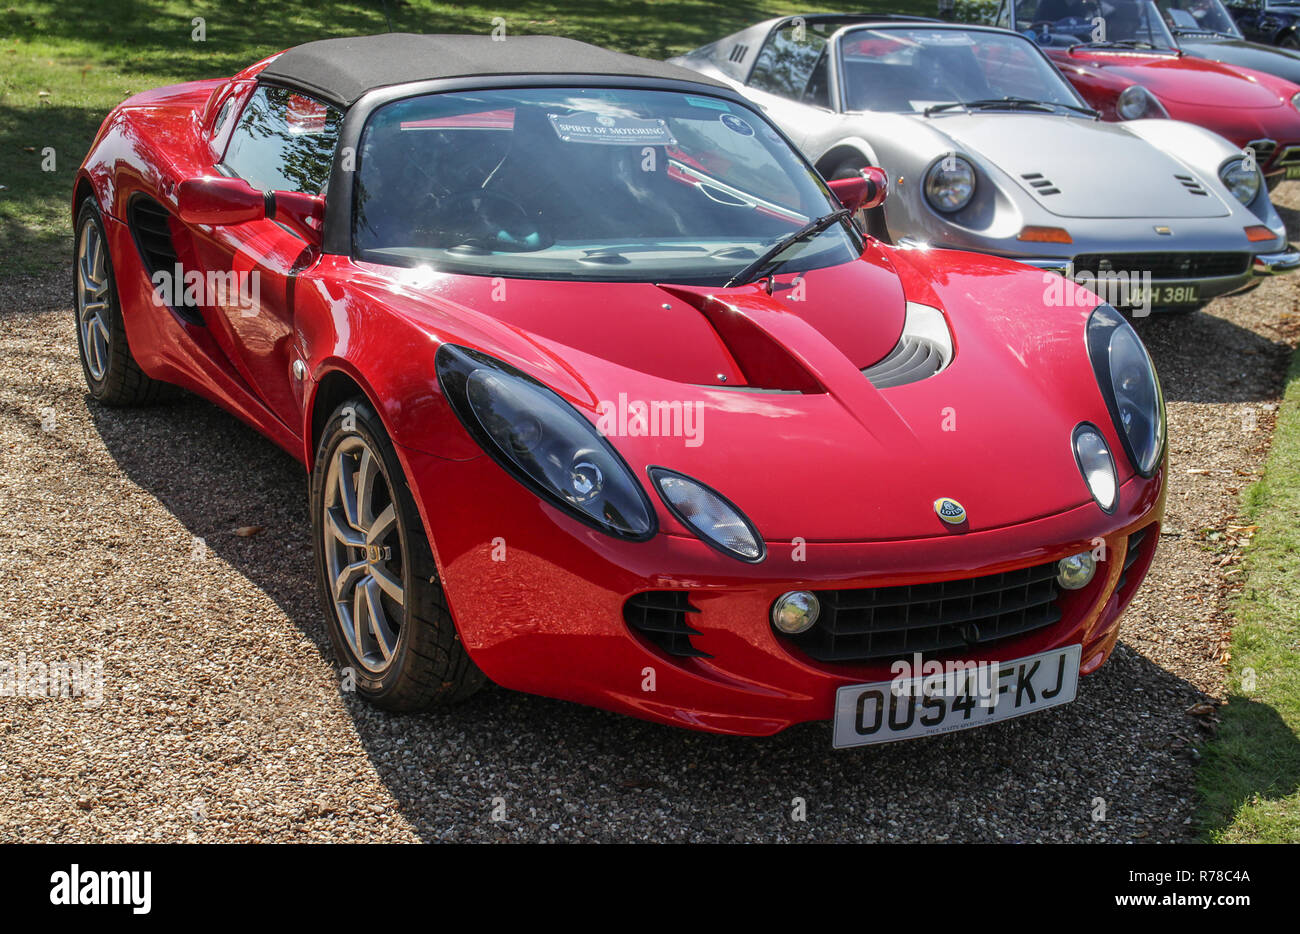 A Lotus Elise one of the club cars displayed at the Concours of Elegance 2018 at Hampton Court Palace, Molesey, East Surrey - Stock Image